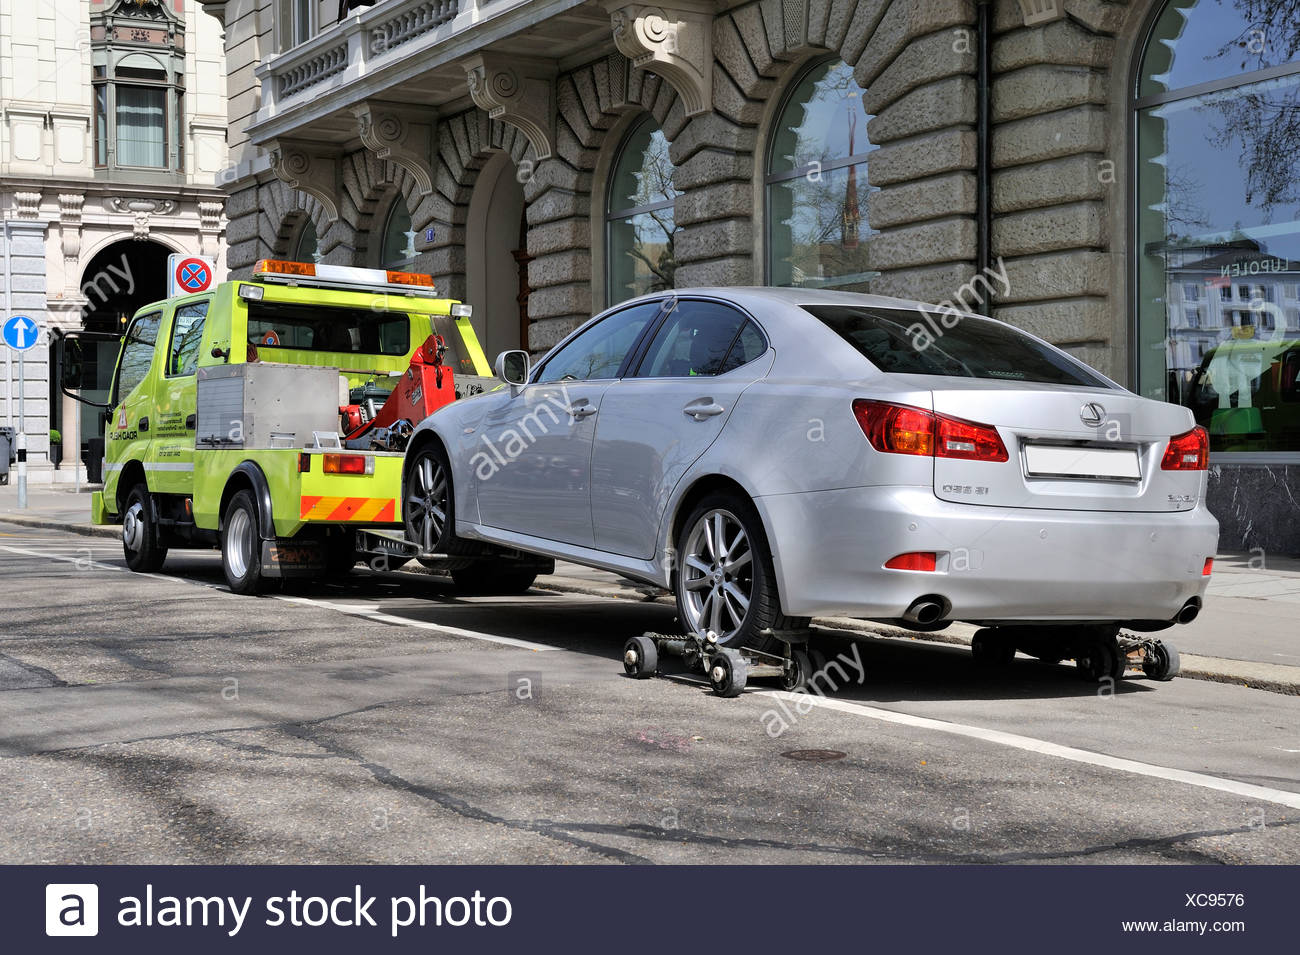 A car is being towed away from a no-parking zone in the historic district of Zurich, Canton of Zurich, Switzerland, Europe - Stock Image